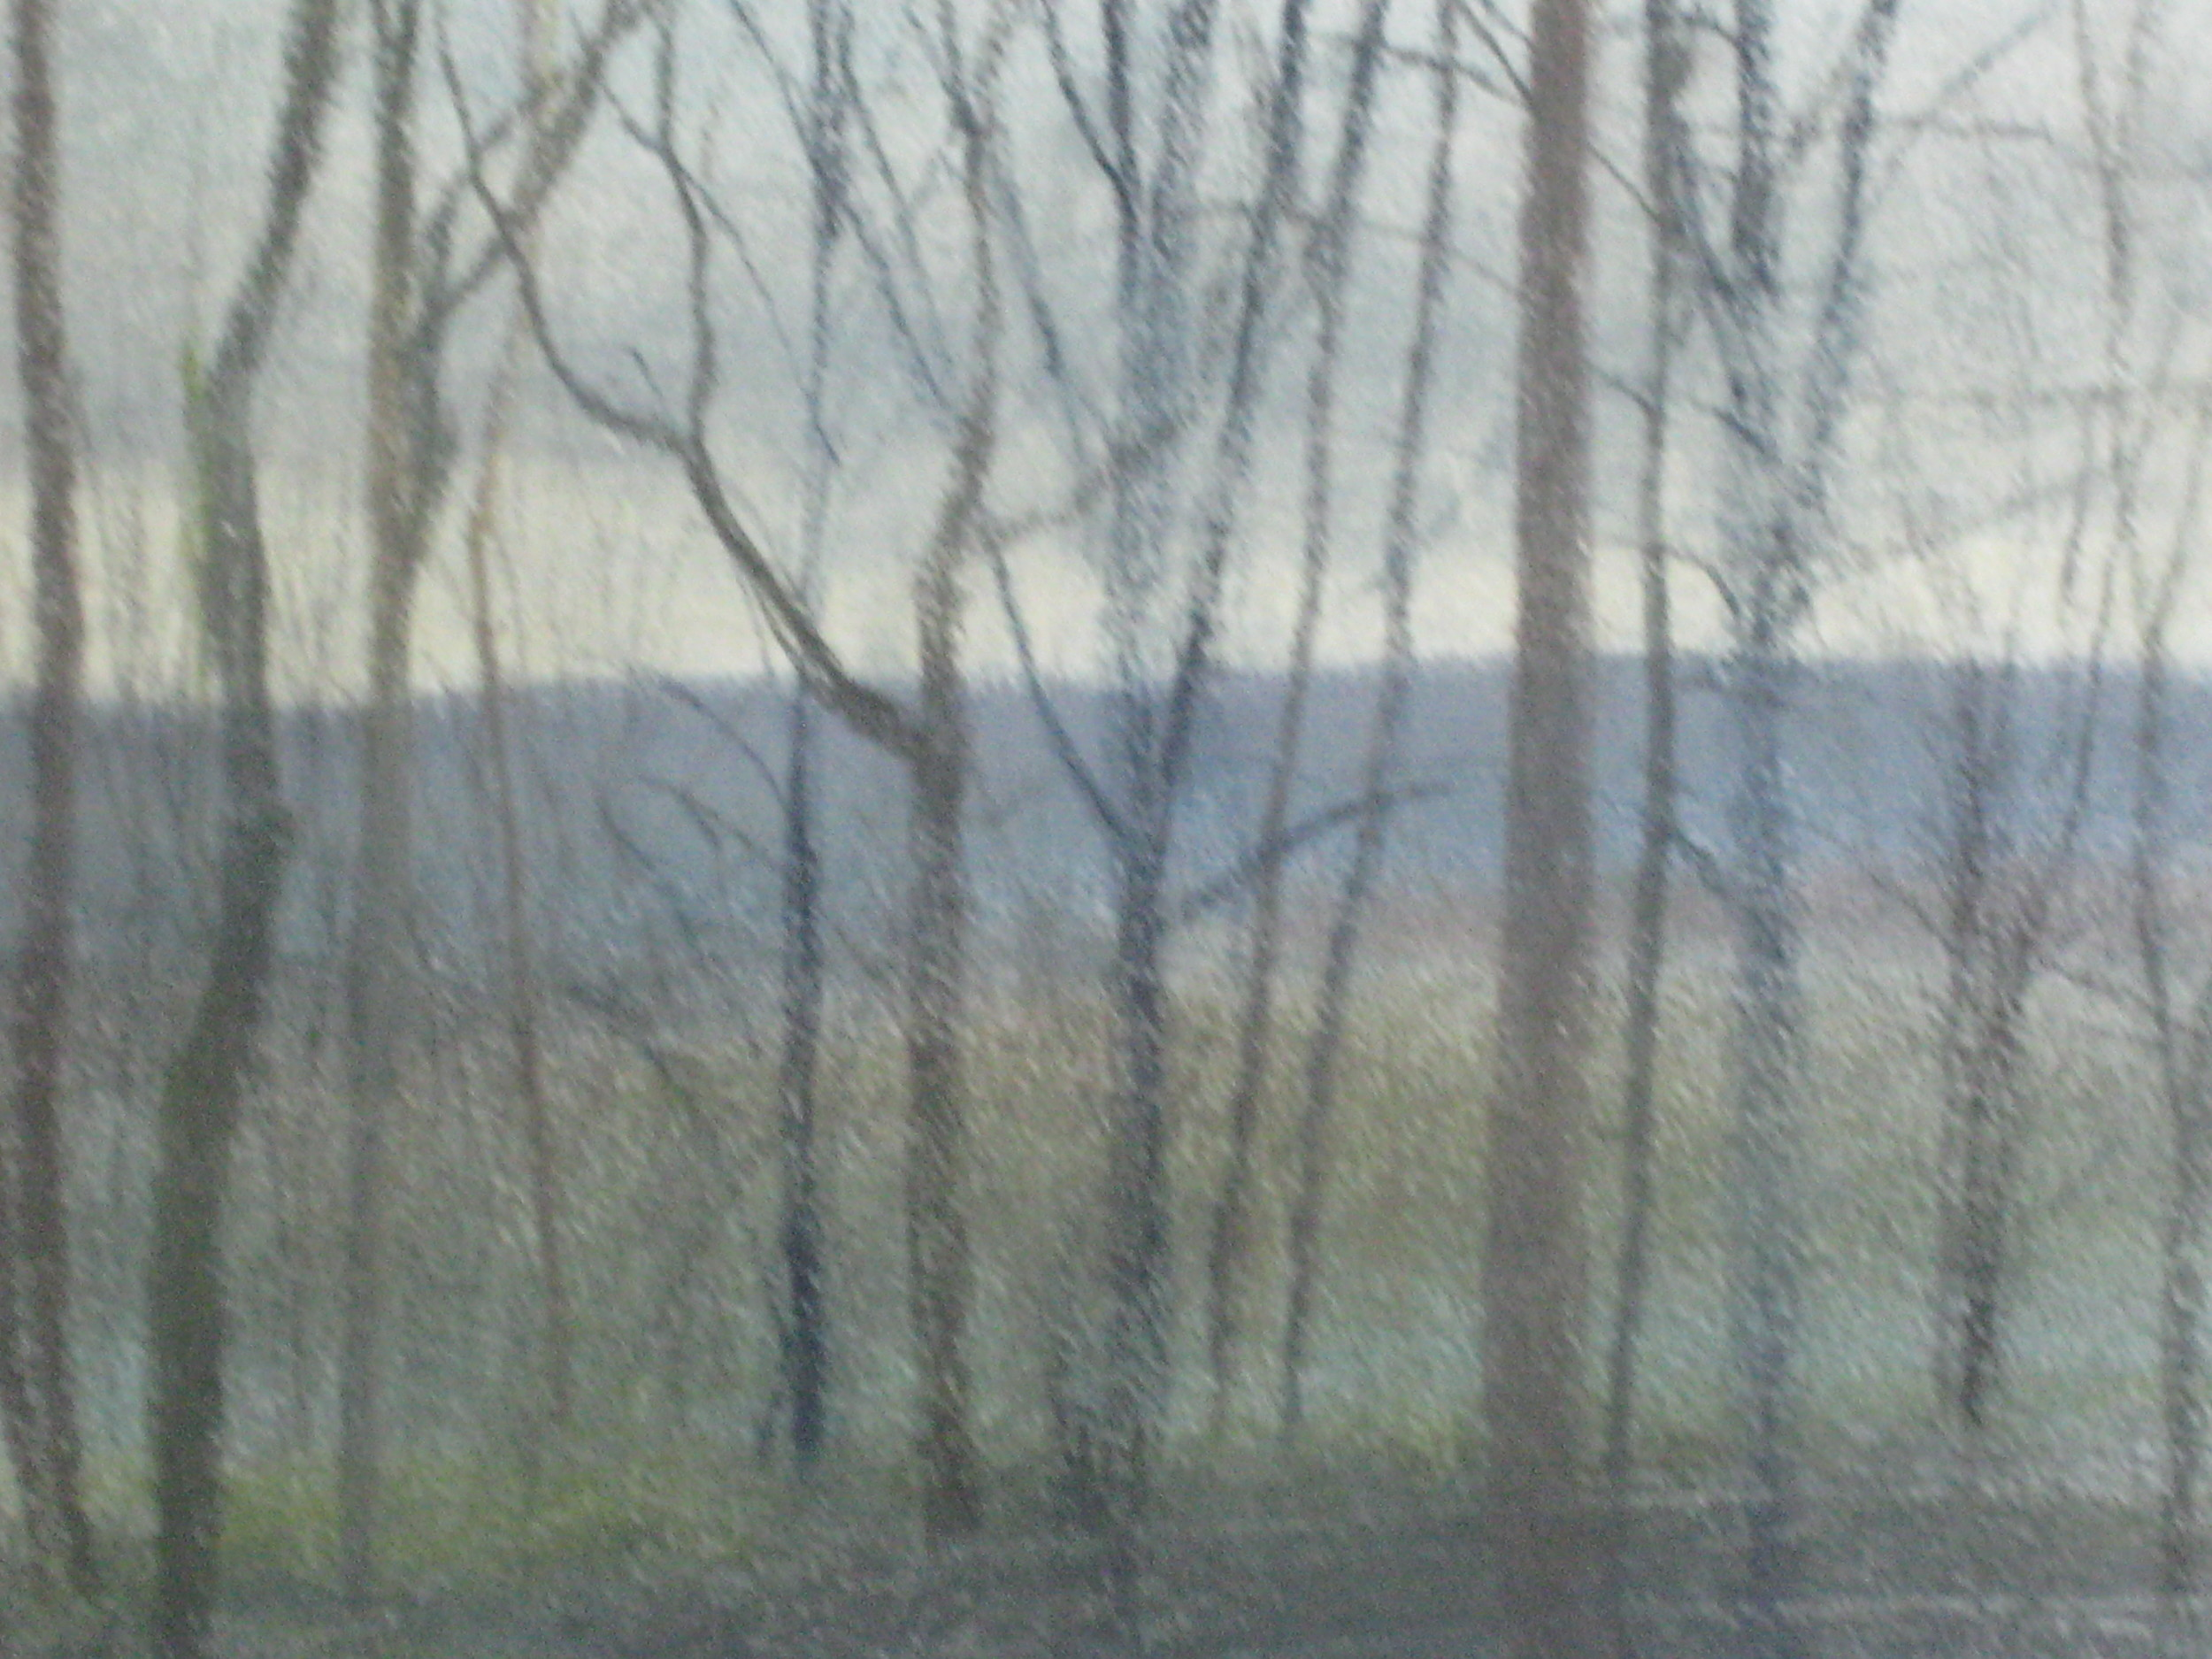 TREES, WINTER, NORMANDY